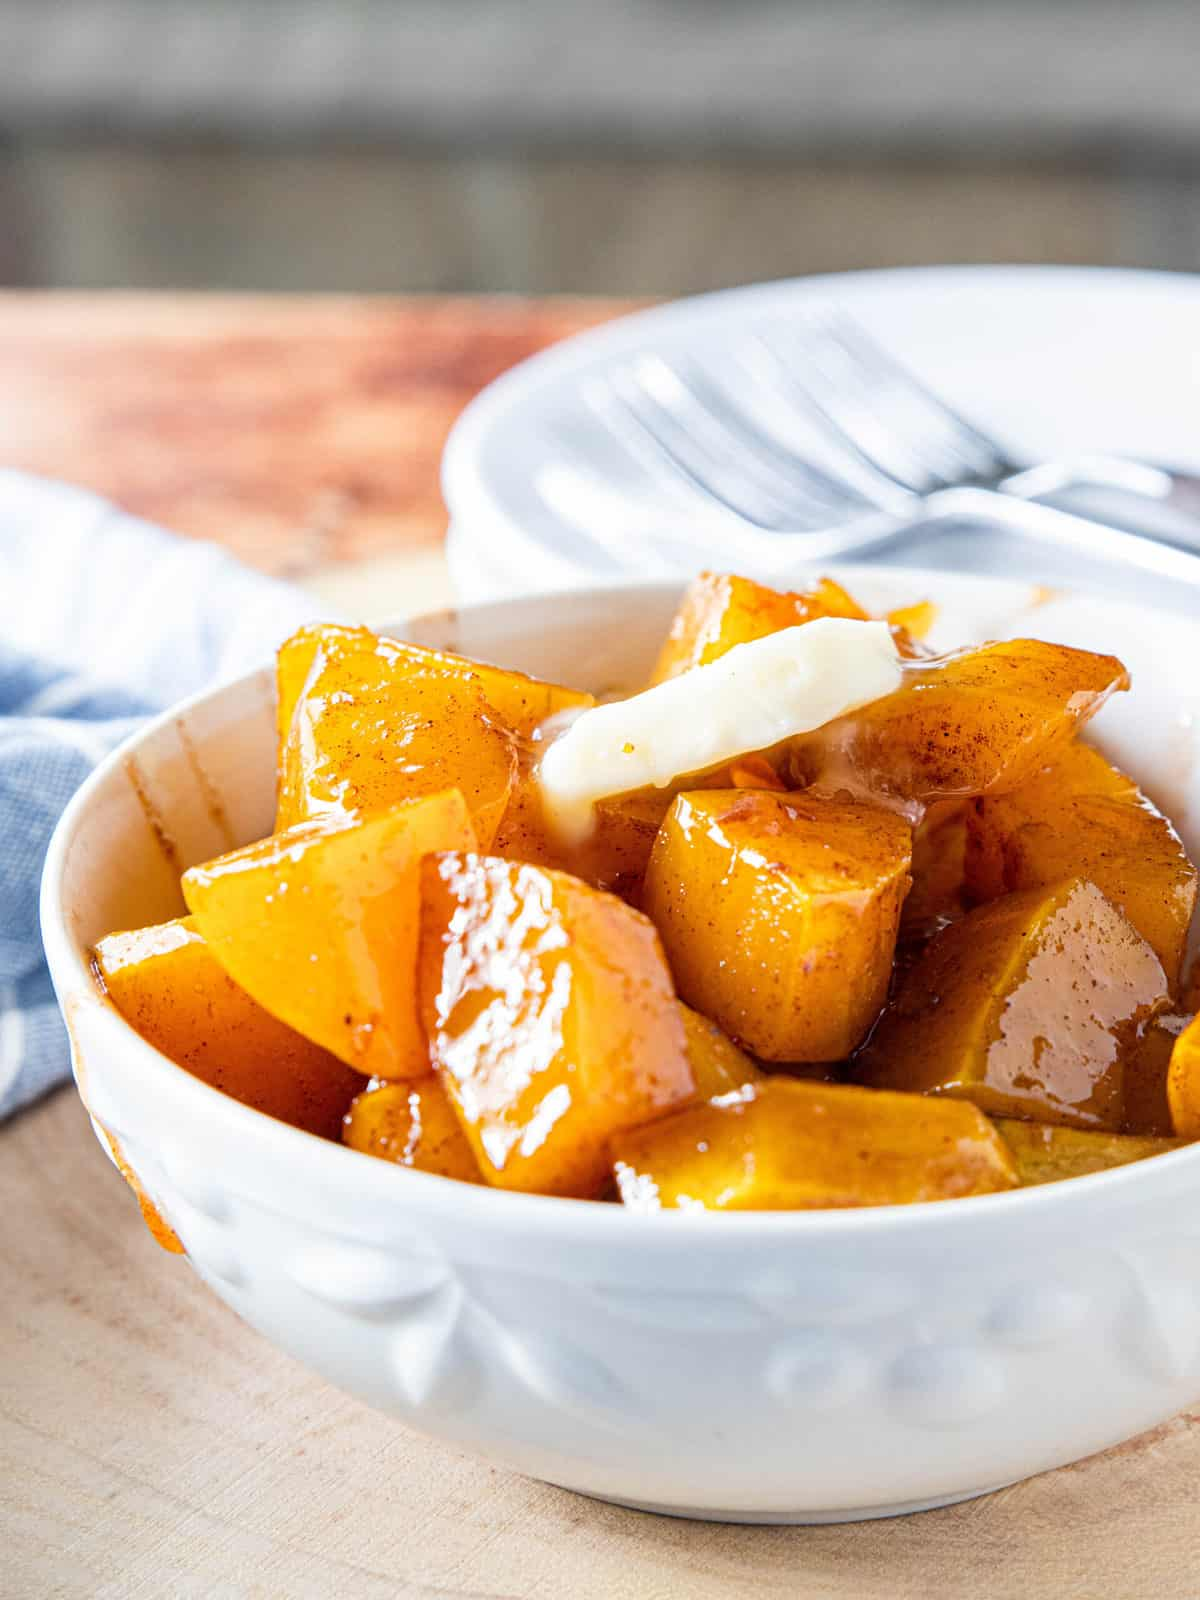 Maple roasted butternut squash in a white serving bowl.